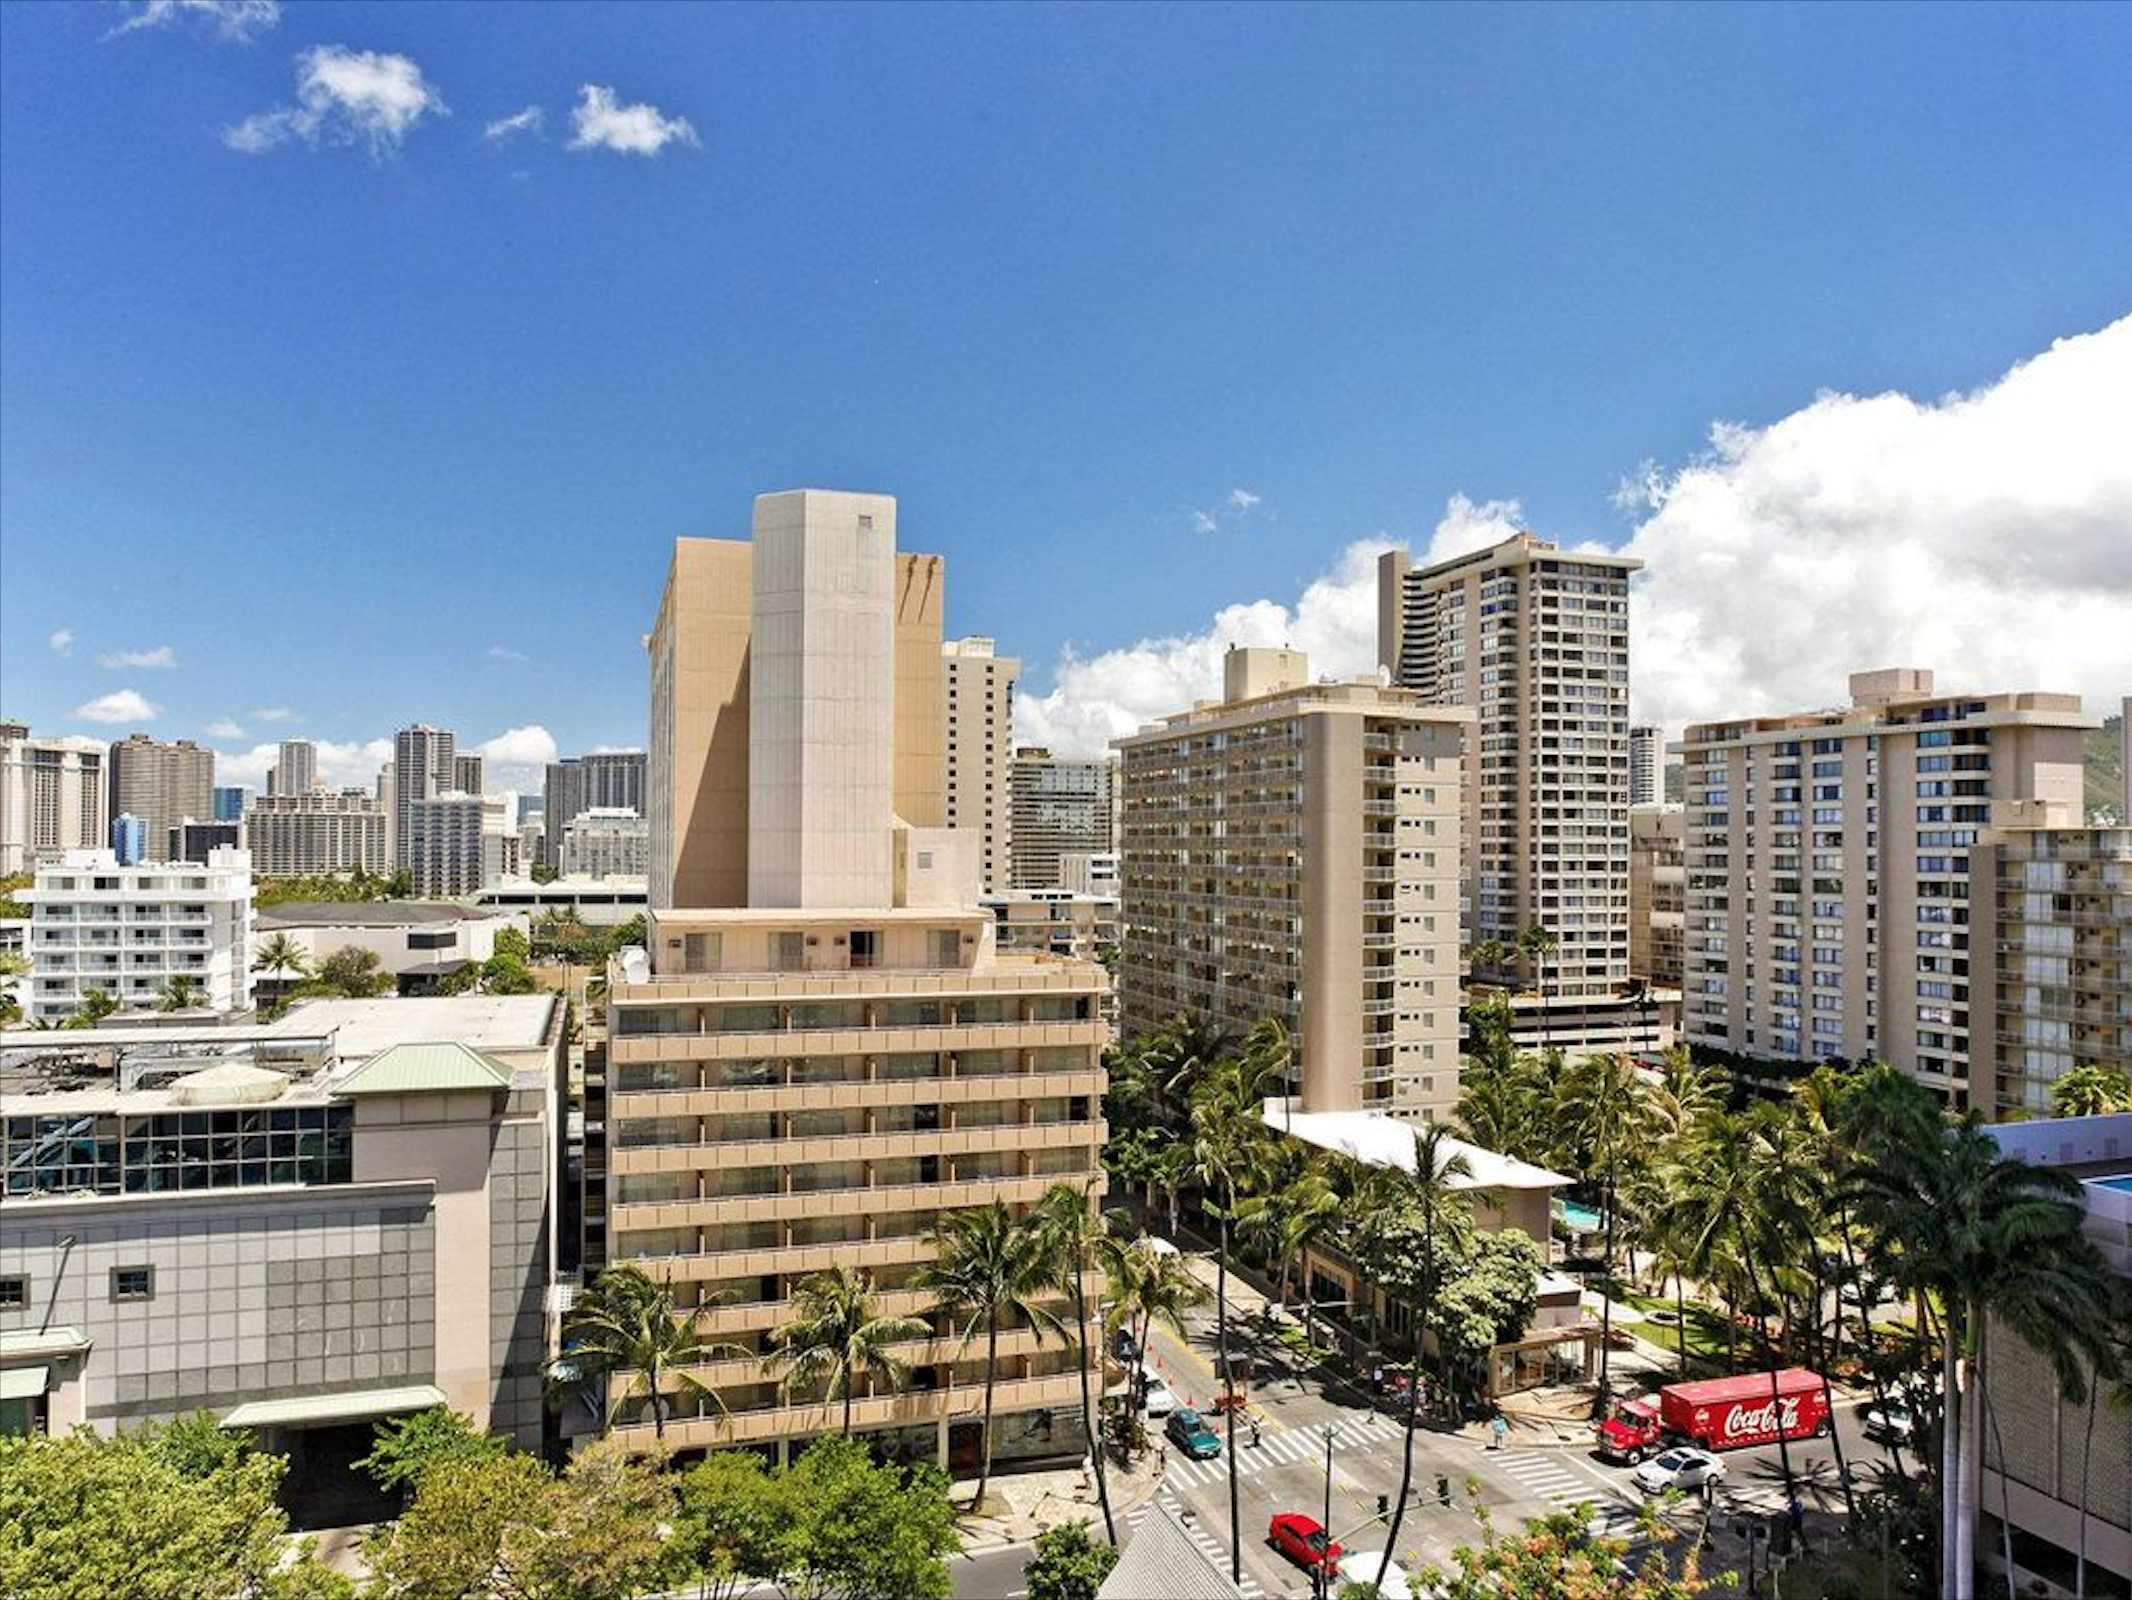 Commercial Building Painters Hawaii